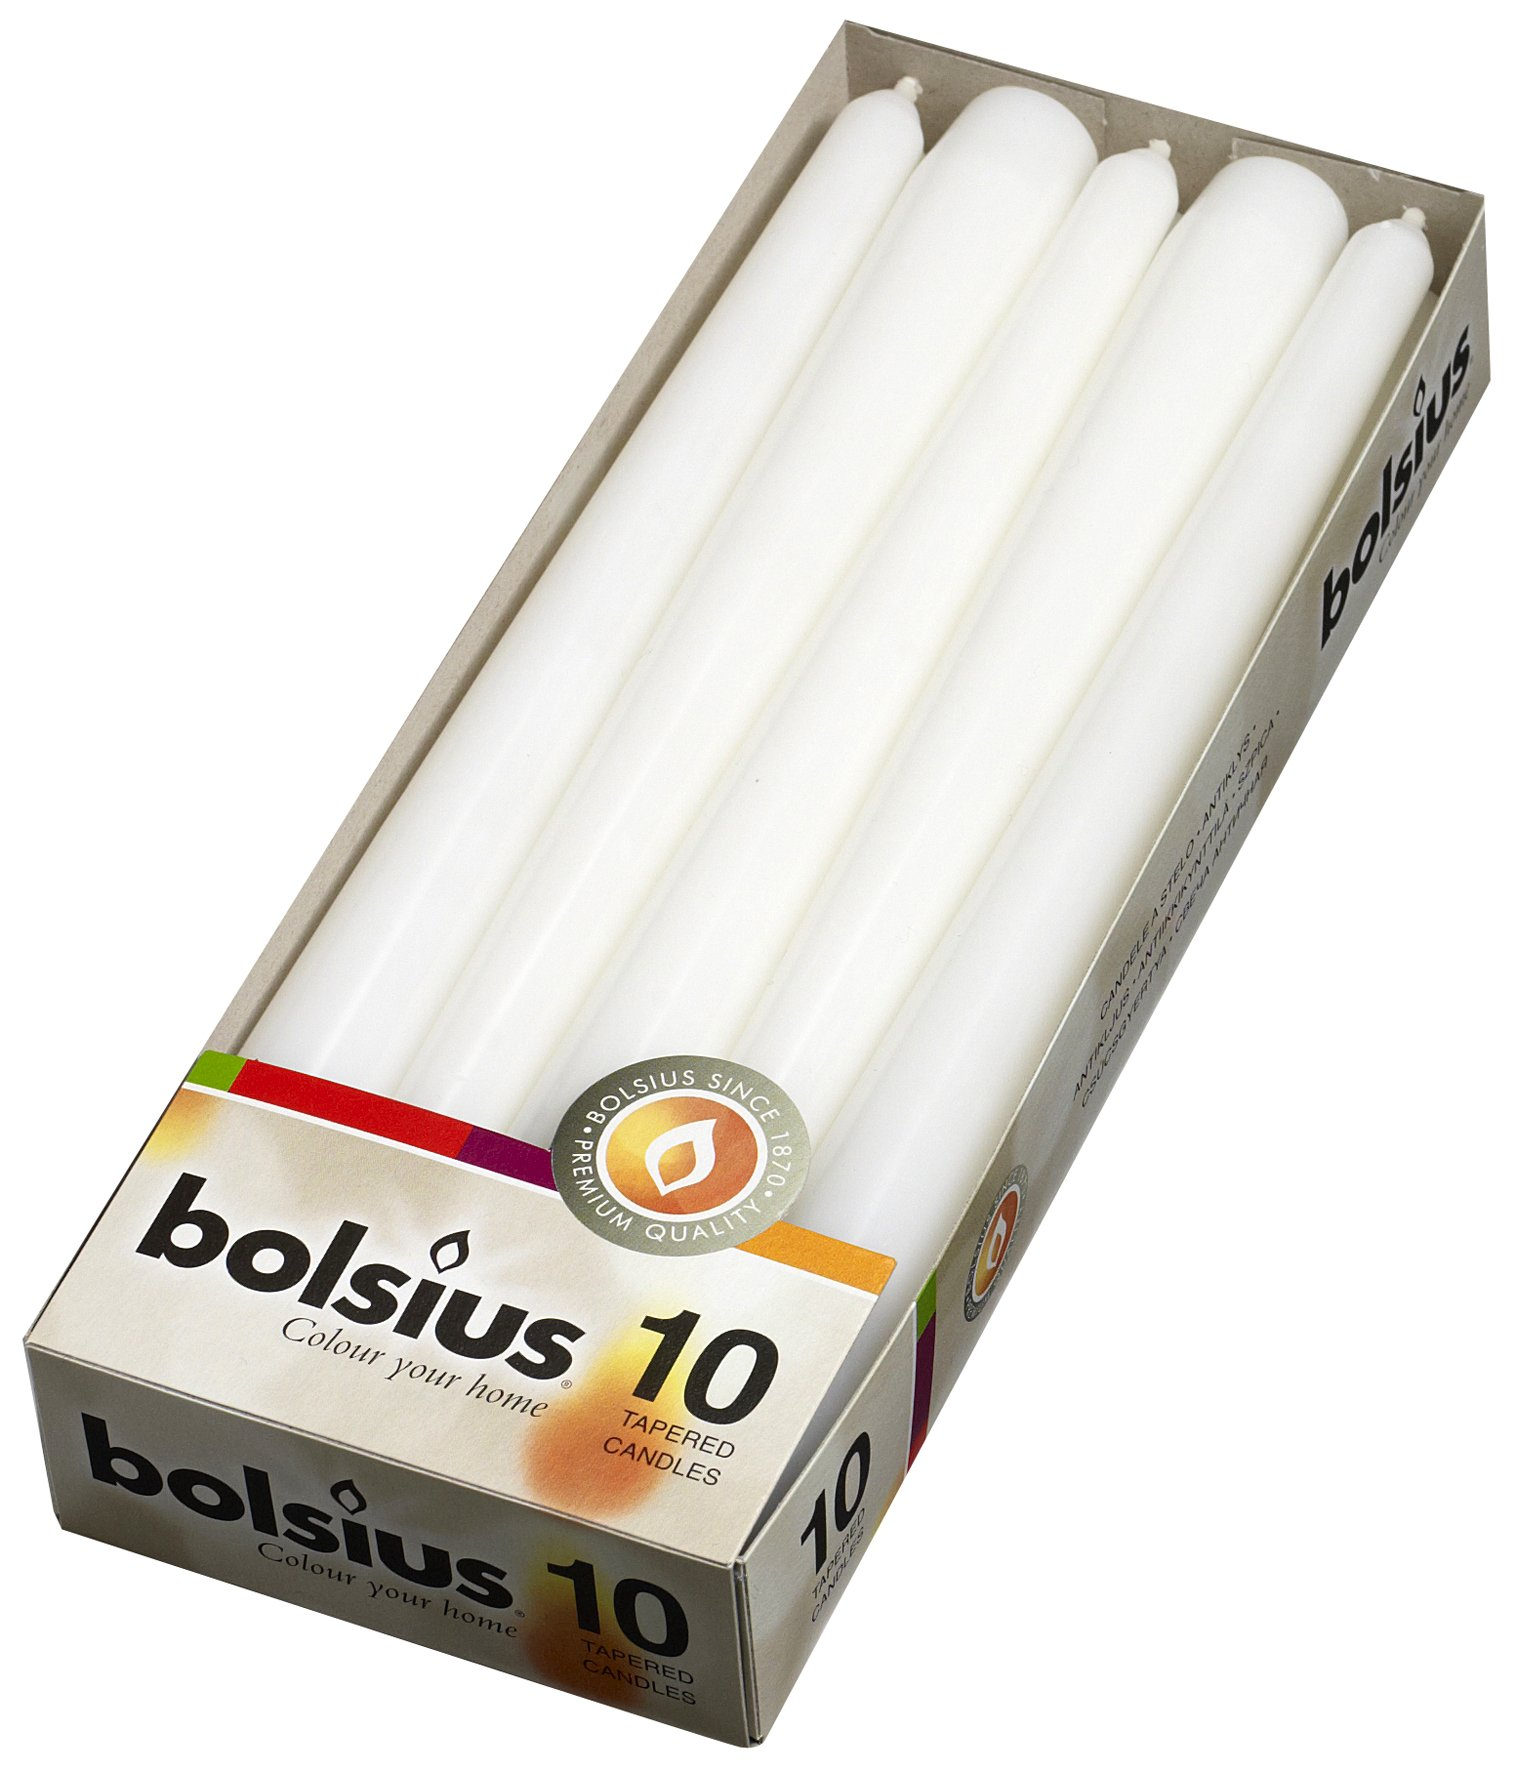 BOLSIUS Long Household White Taper Candles - 10-inch Unscented Premium Quality Wax - 7.5 Hour Dripless Candles Bulk Pack of 10 for Home Decor, Wedding, Parties and Special Occasions